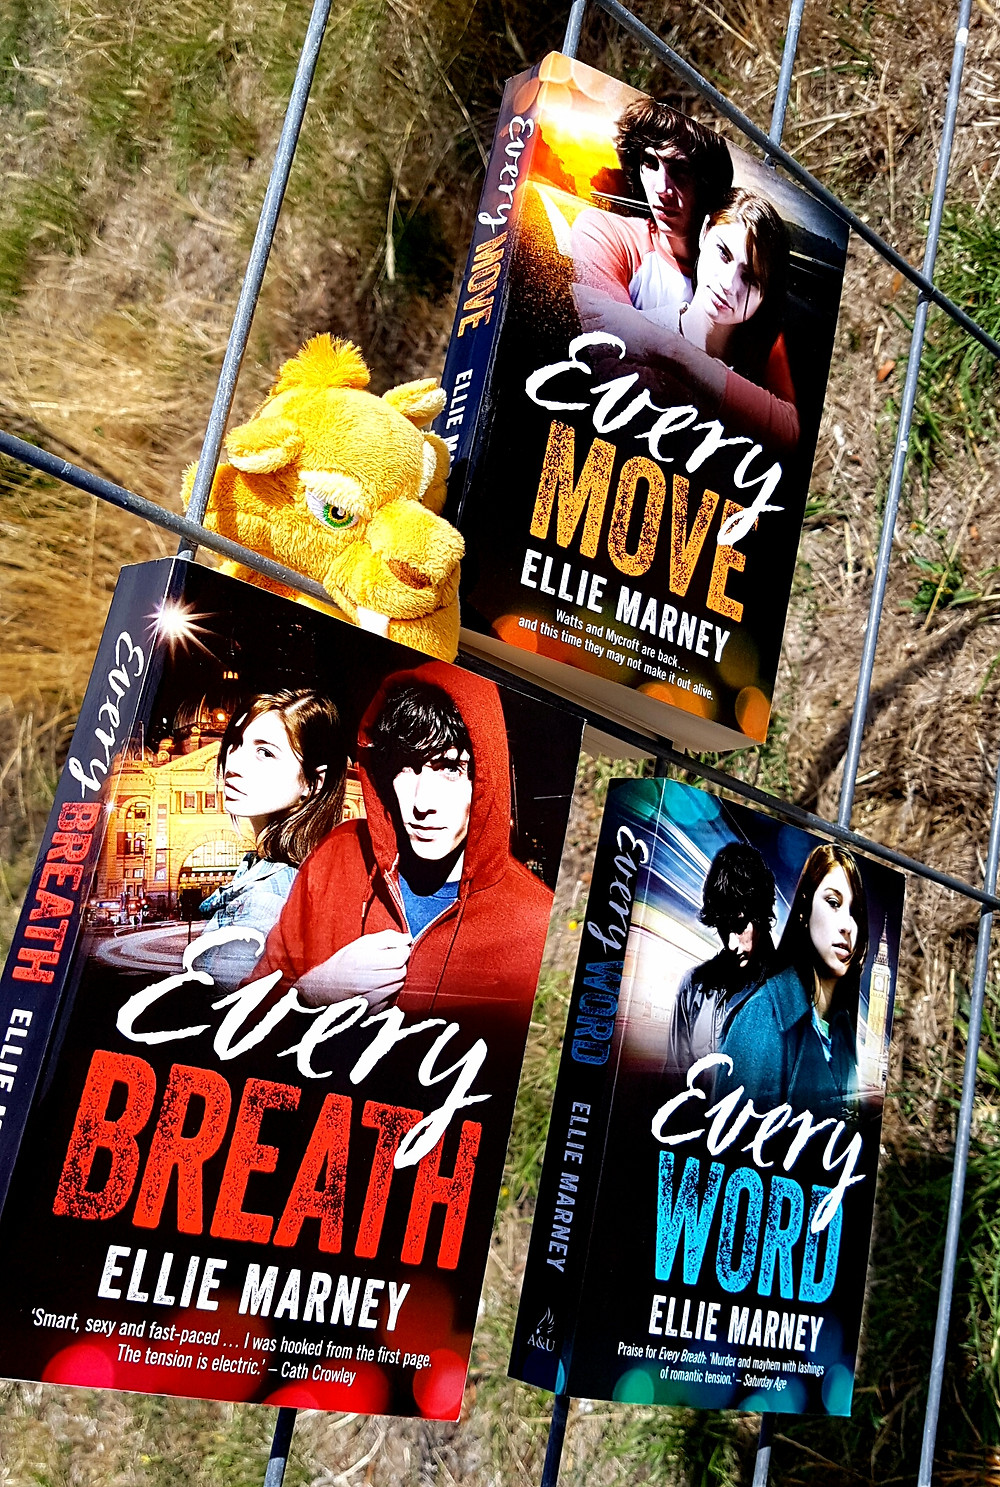 Photo of the Every series, Ellie Marney.